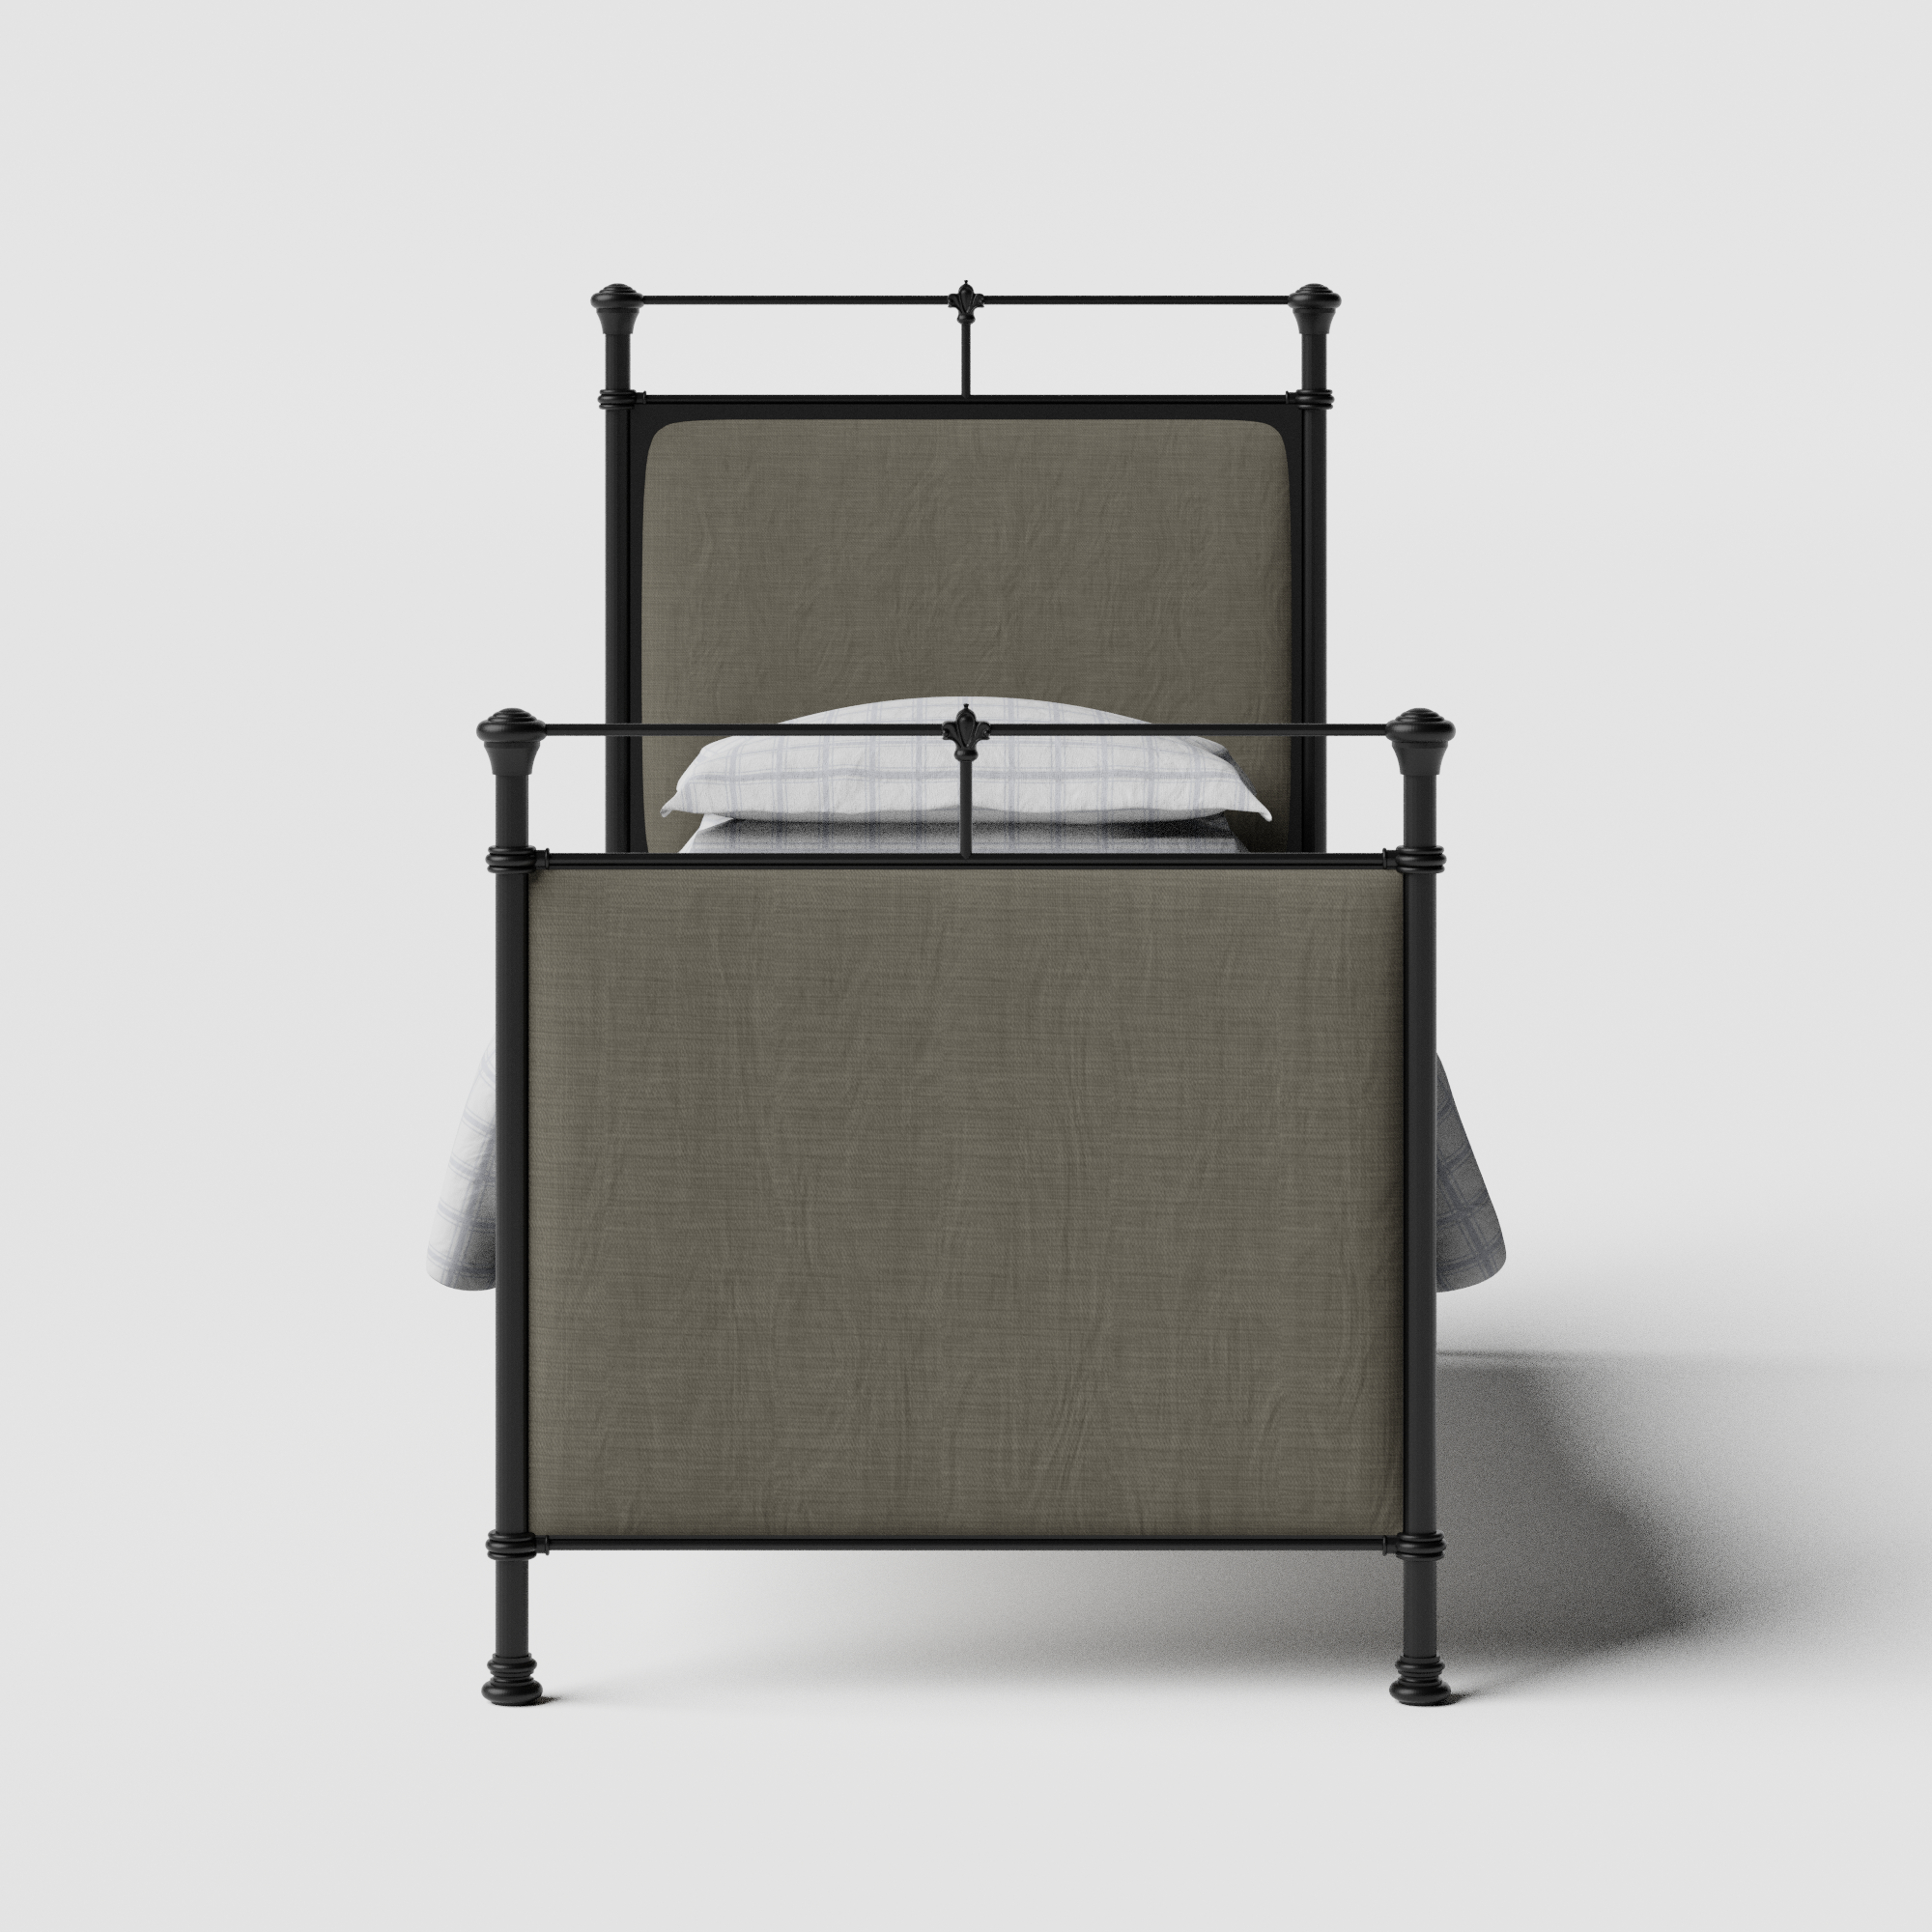 Lille iron/metal single bed in black